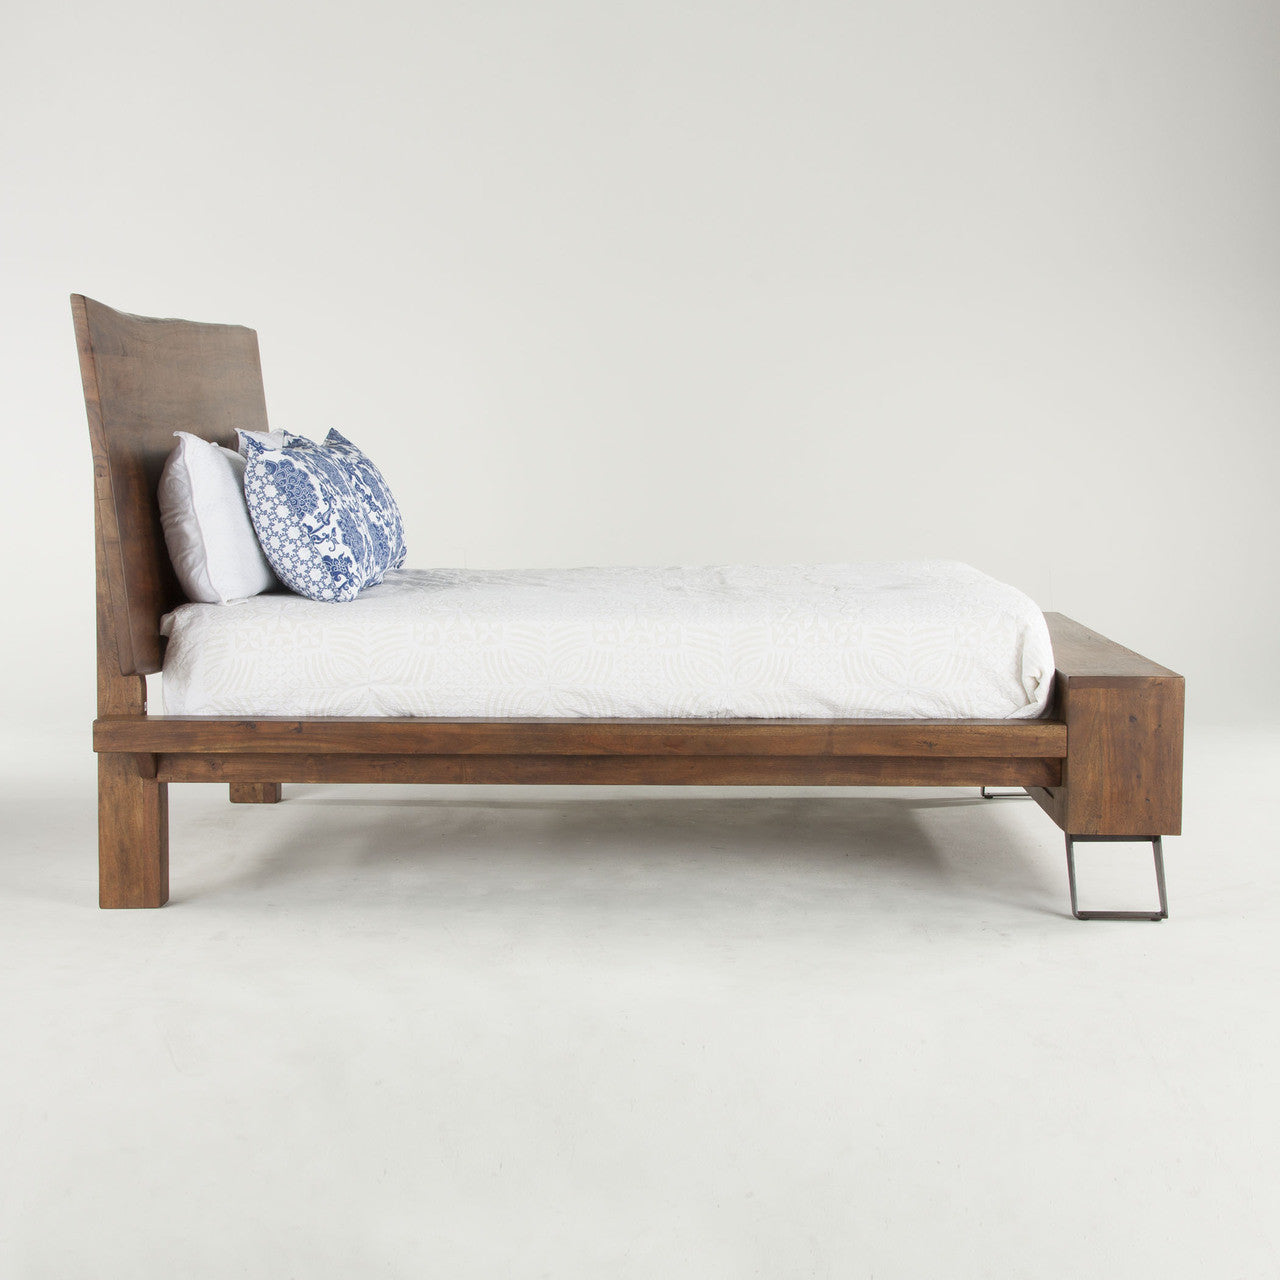 Home Trends & Design London Loft Queen Bed - FLL-PBQWN | HipBeds.com